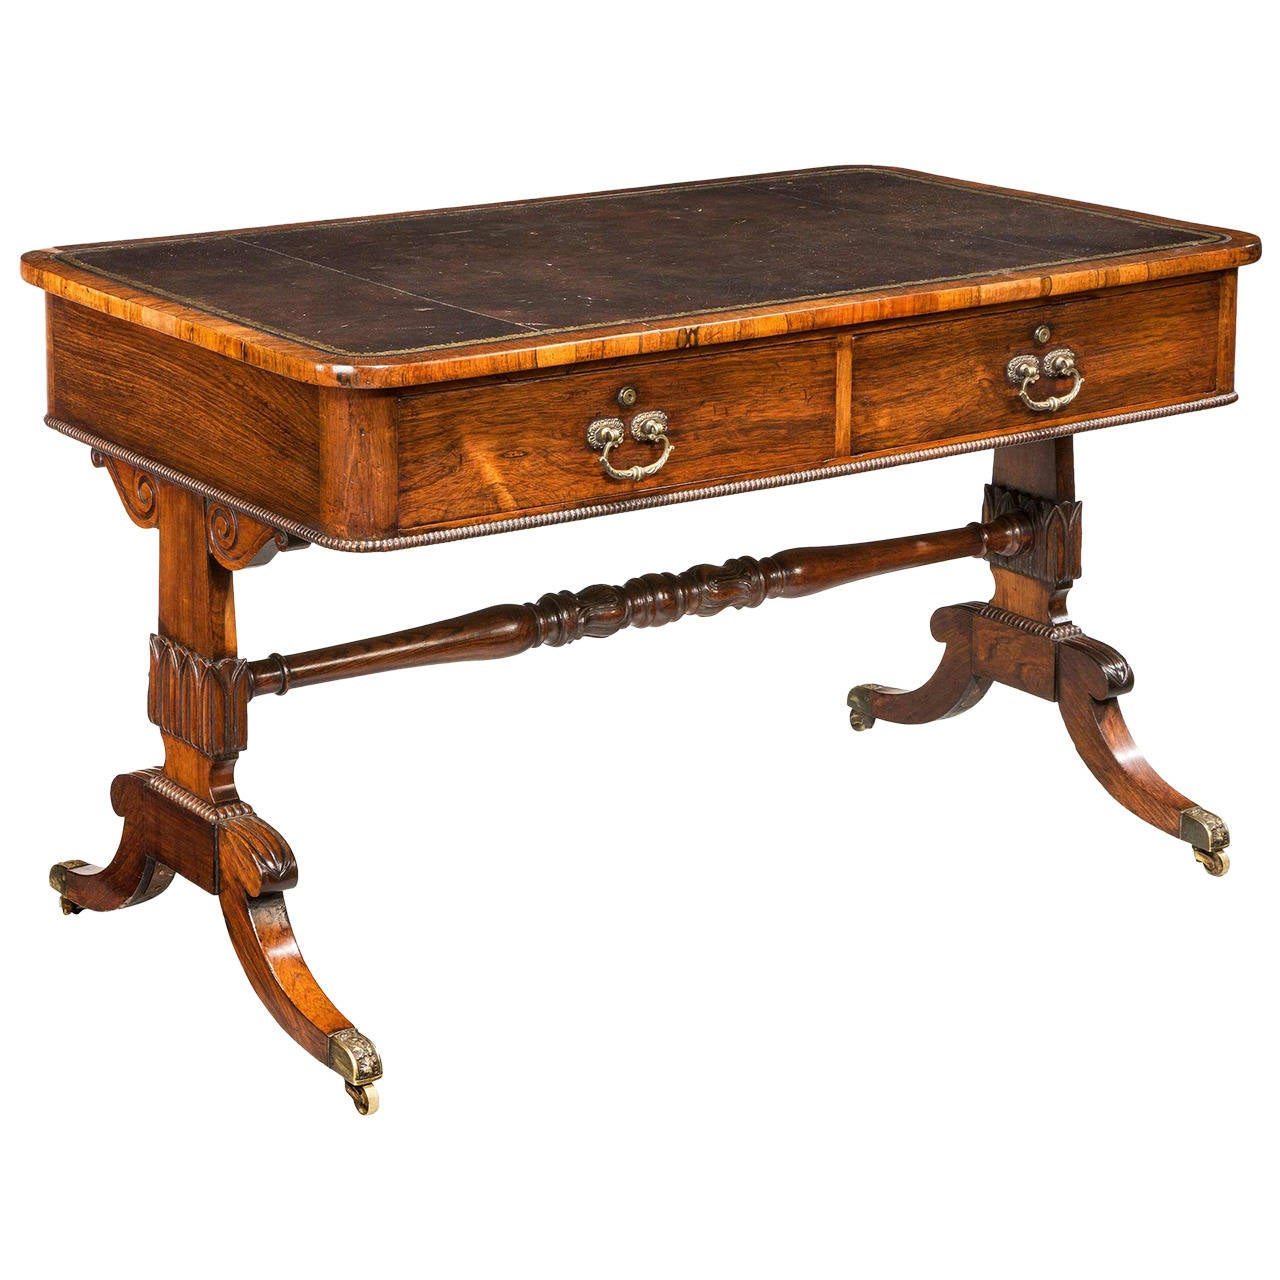 Regency Period Rosewood Library Table For Sale at 1stdibs